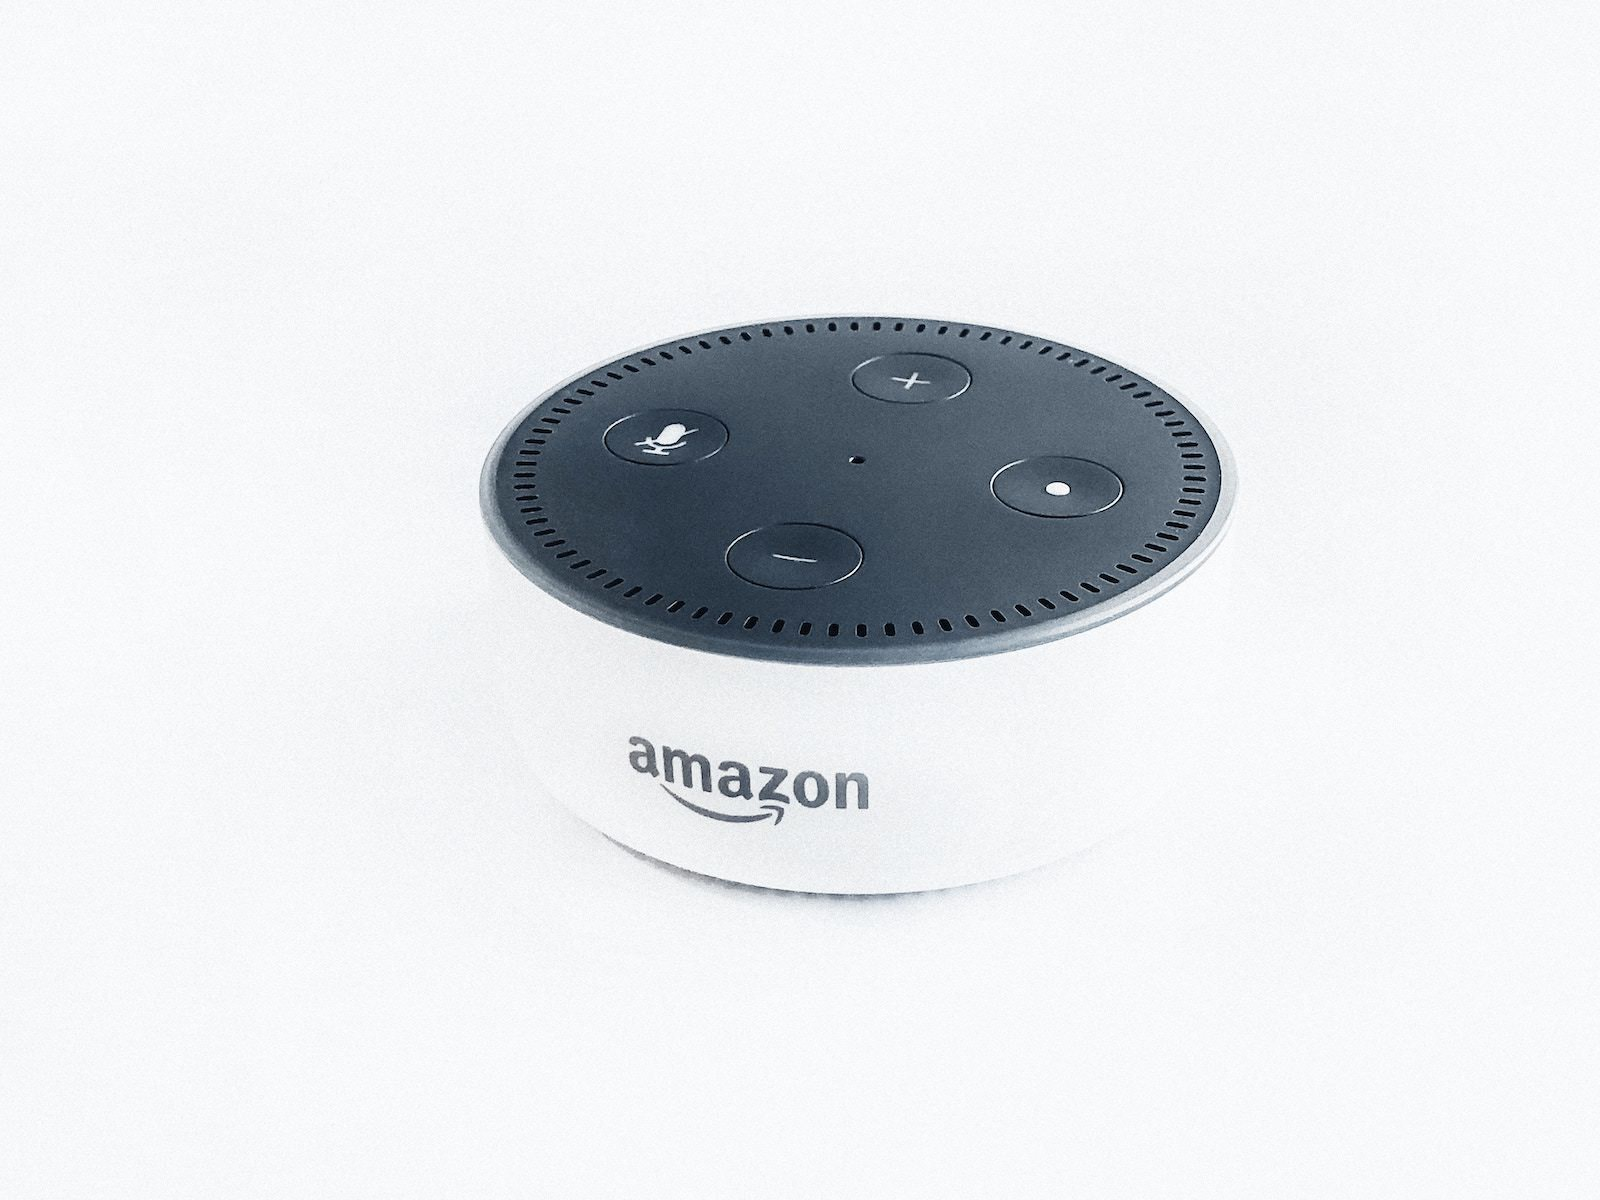 Rahul chakraborty 556155 unsplash amazon echo